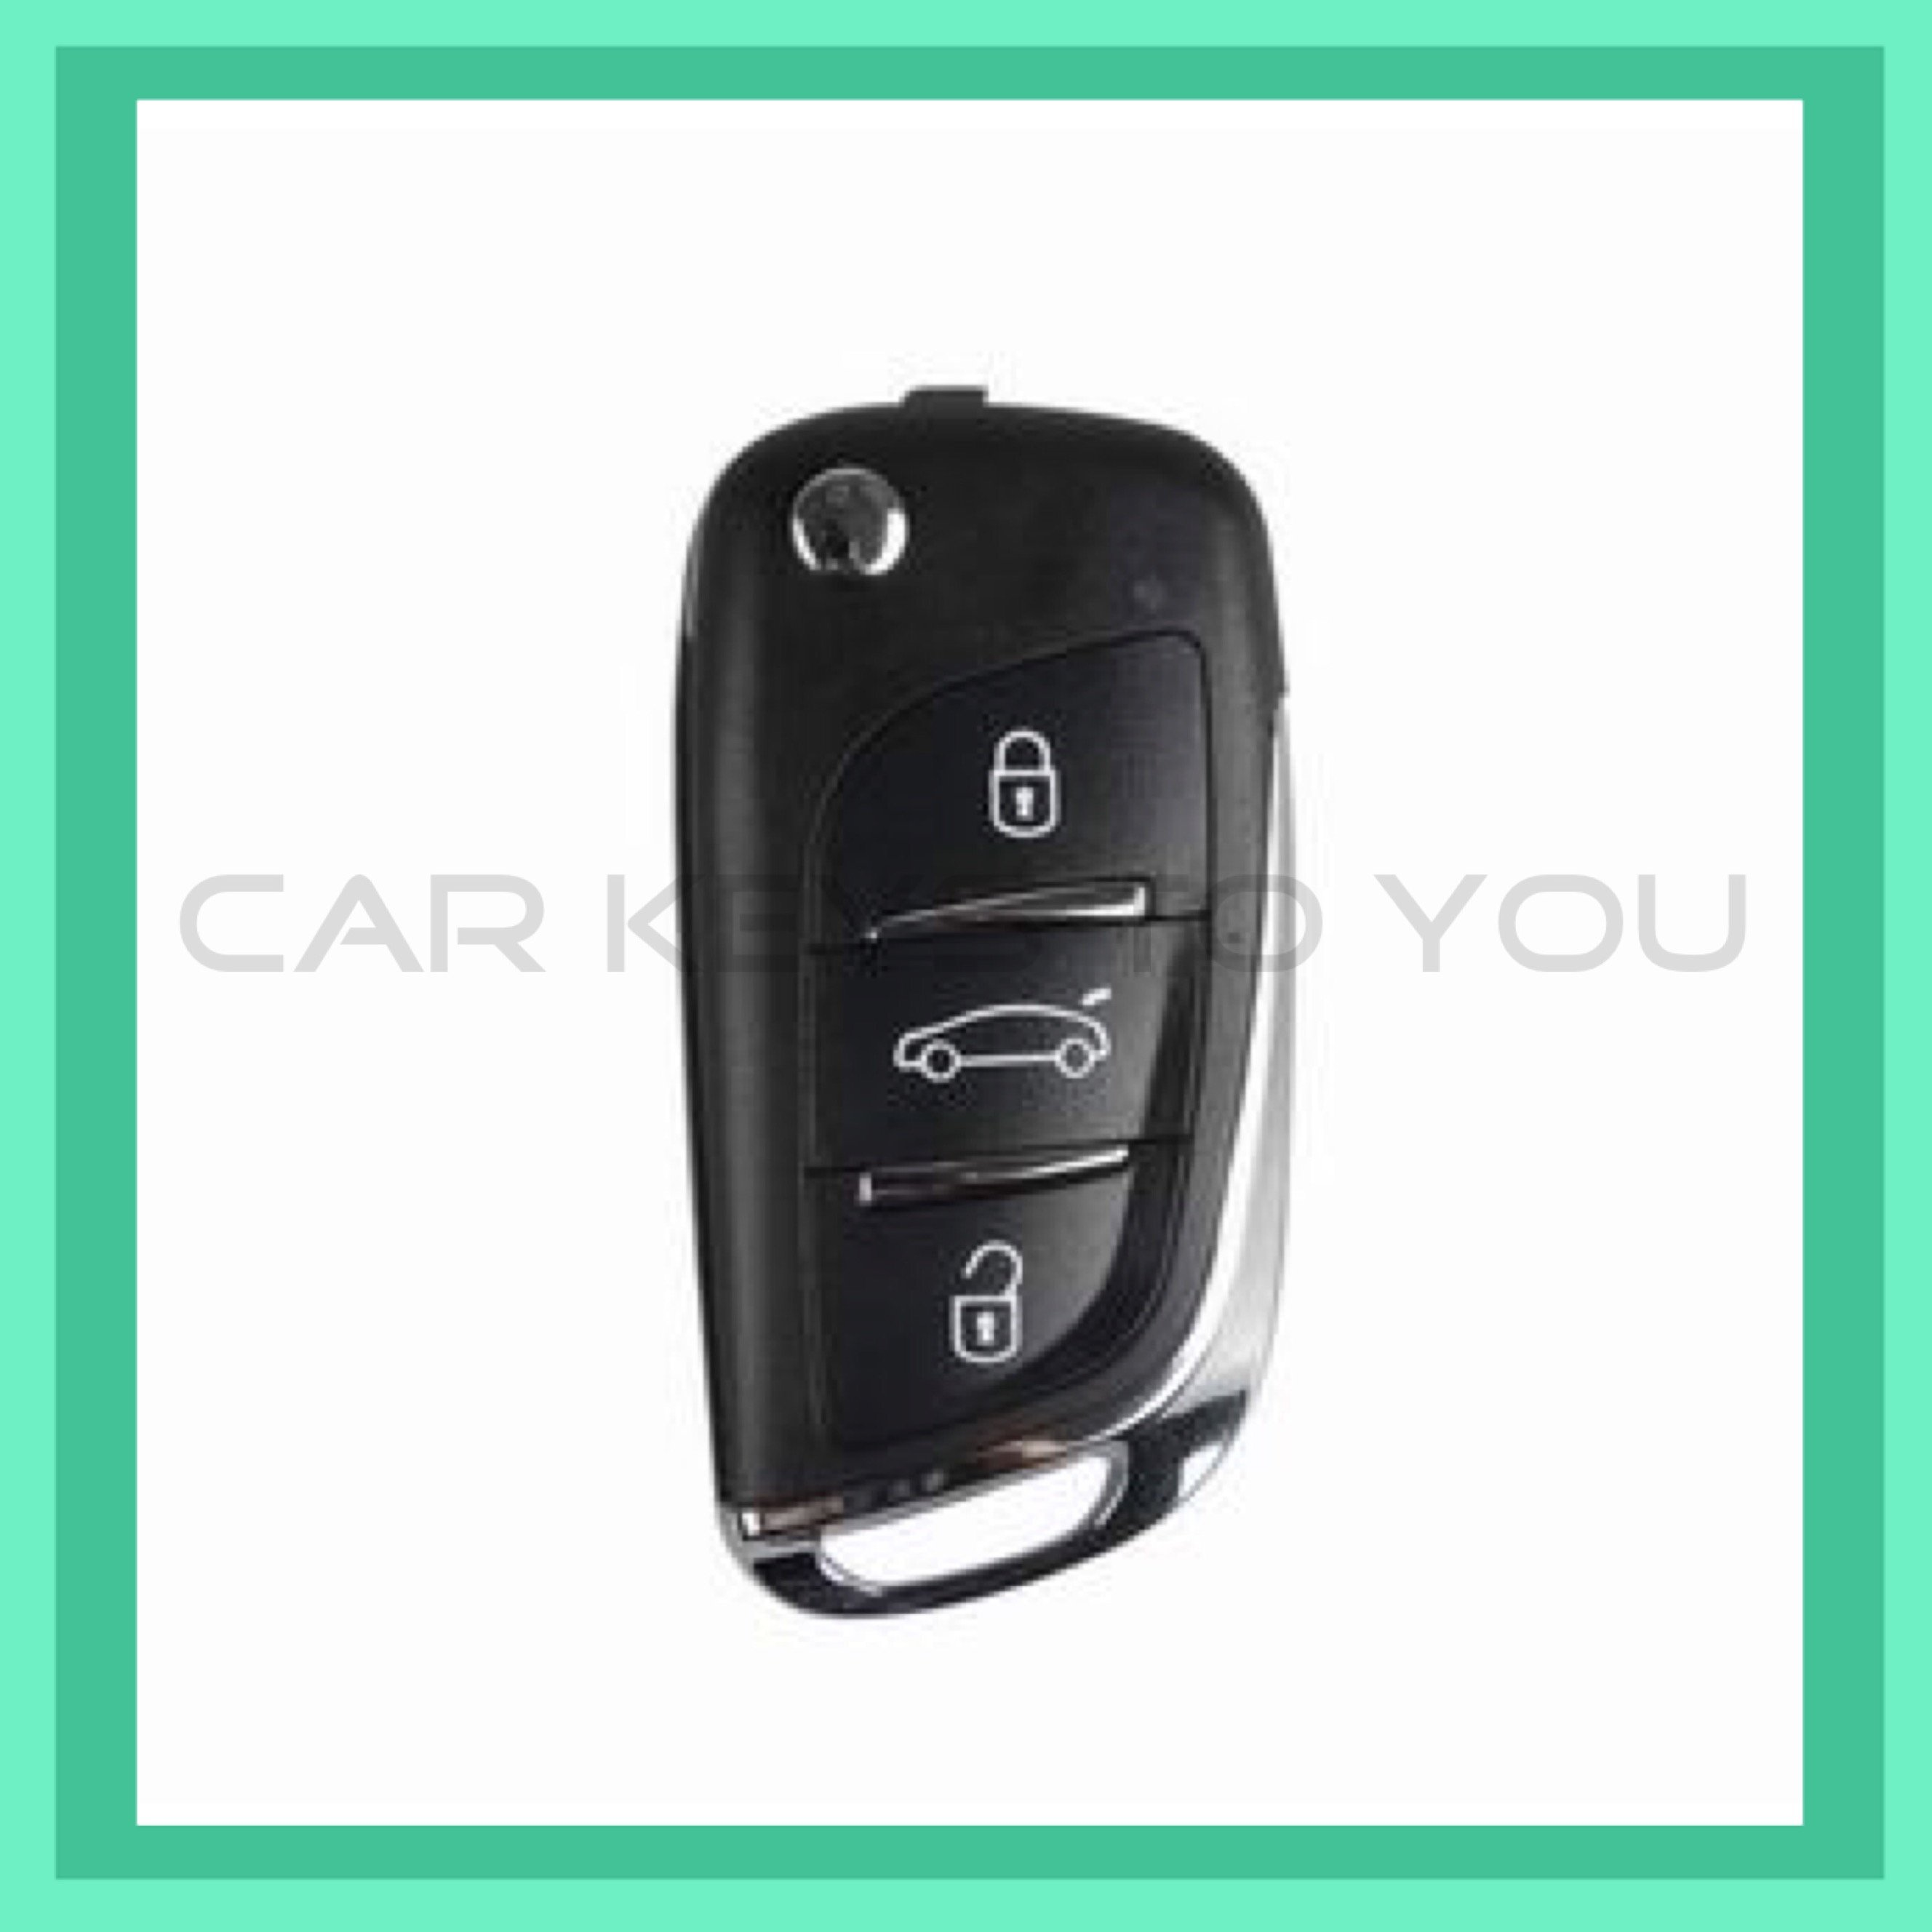 Great Wall Car Key and Remote, Suit V200 K2 2009-2014